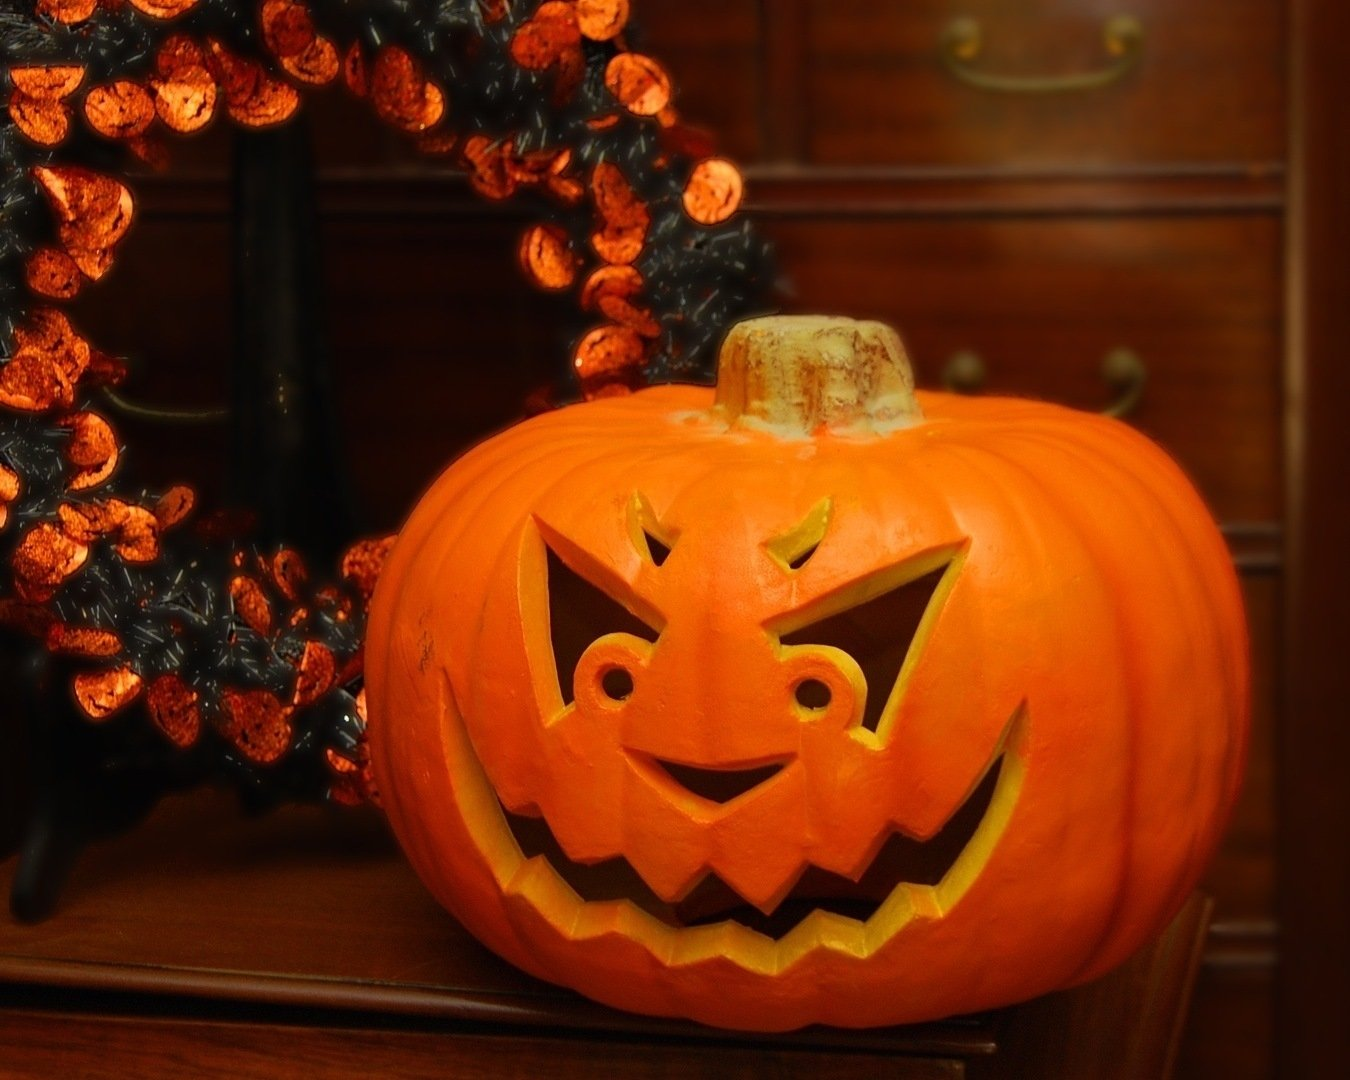 10 Fantastic Jack O Lantern Ideas Kids cool easy pumpkin carving ideas 2016 scary printable pumpkin 4 2020